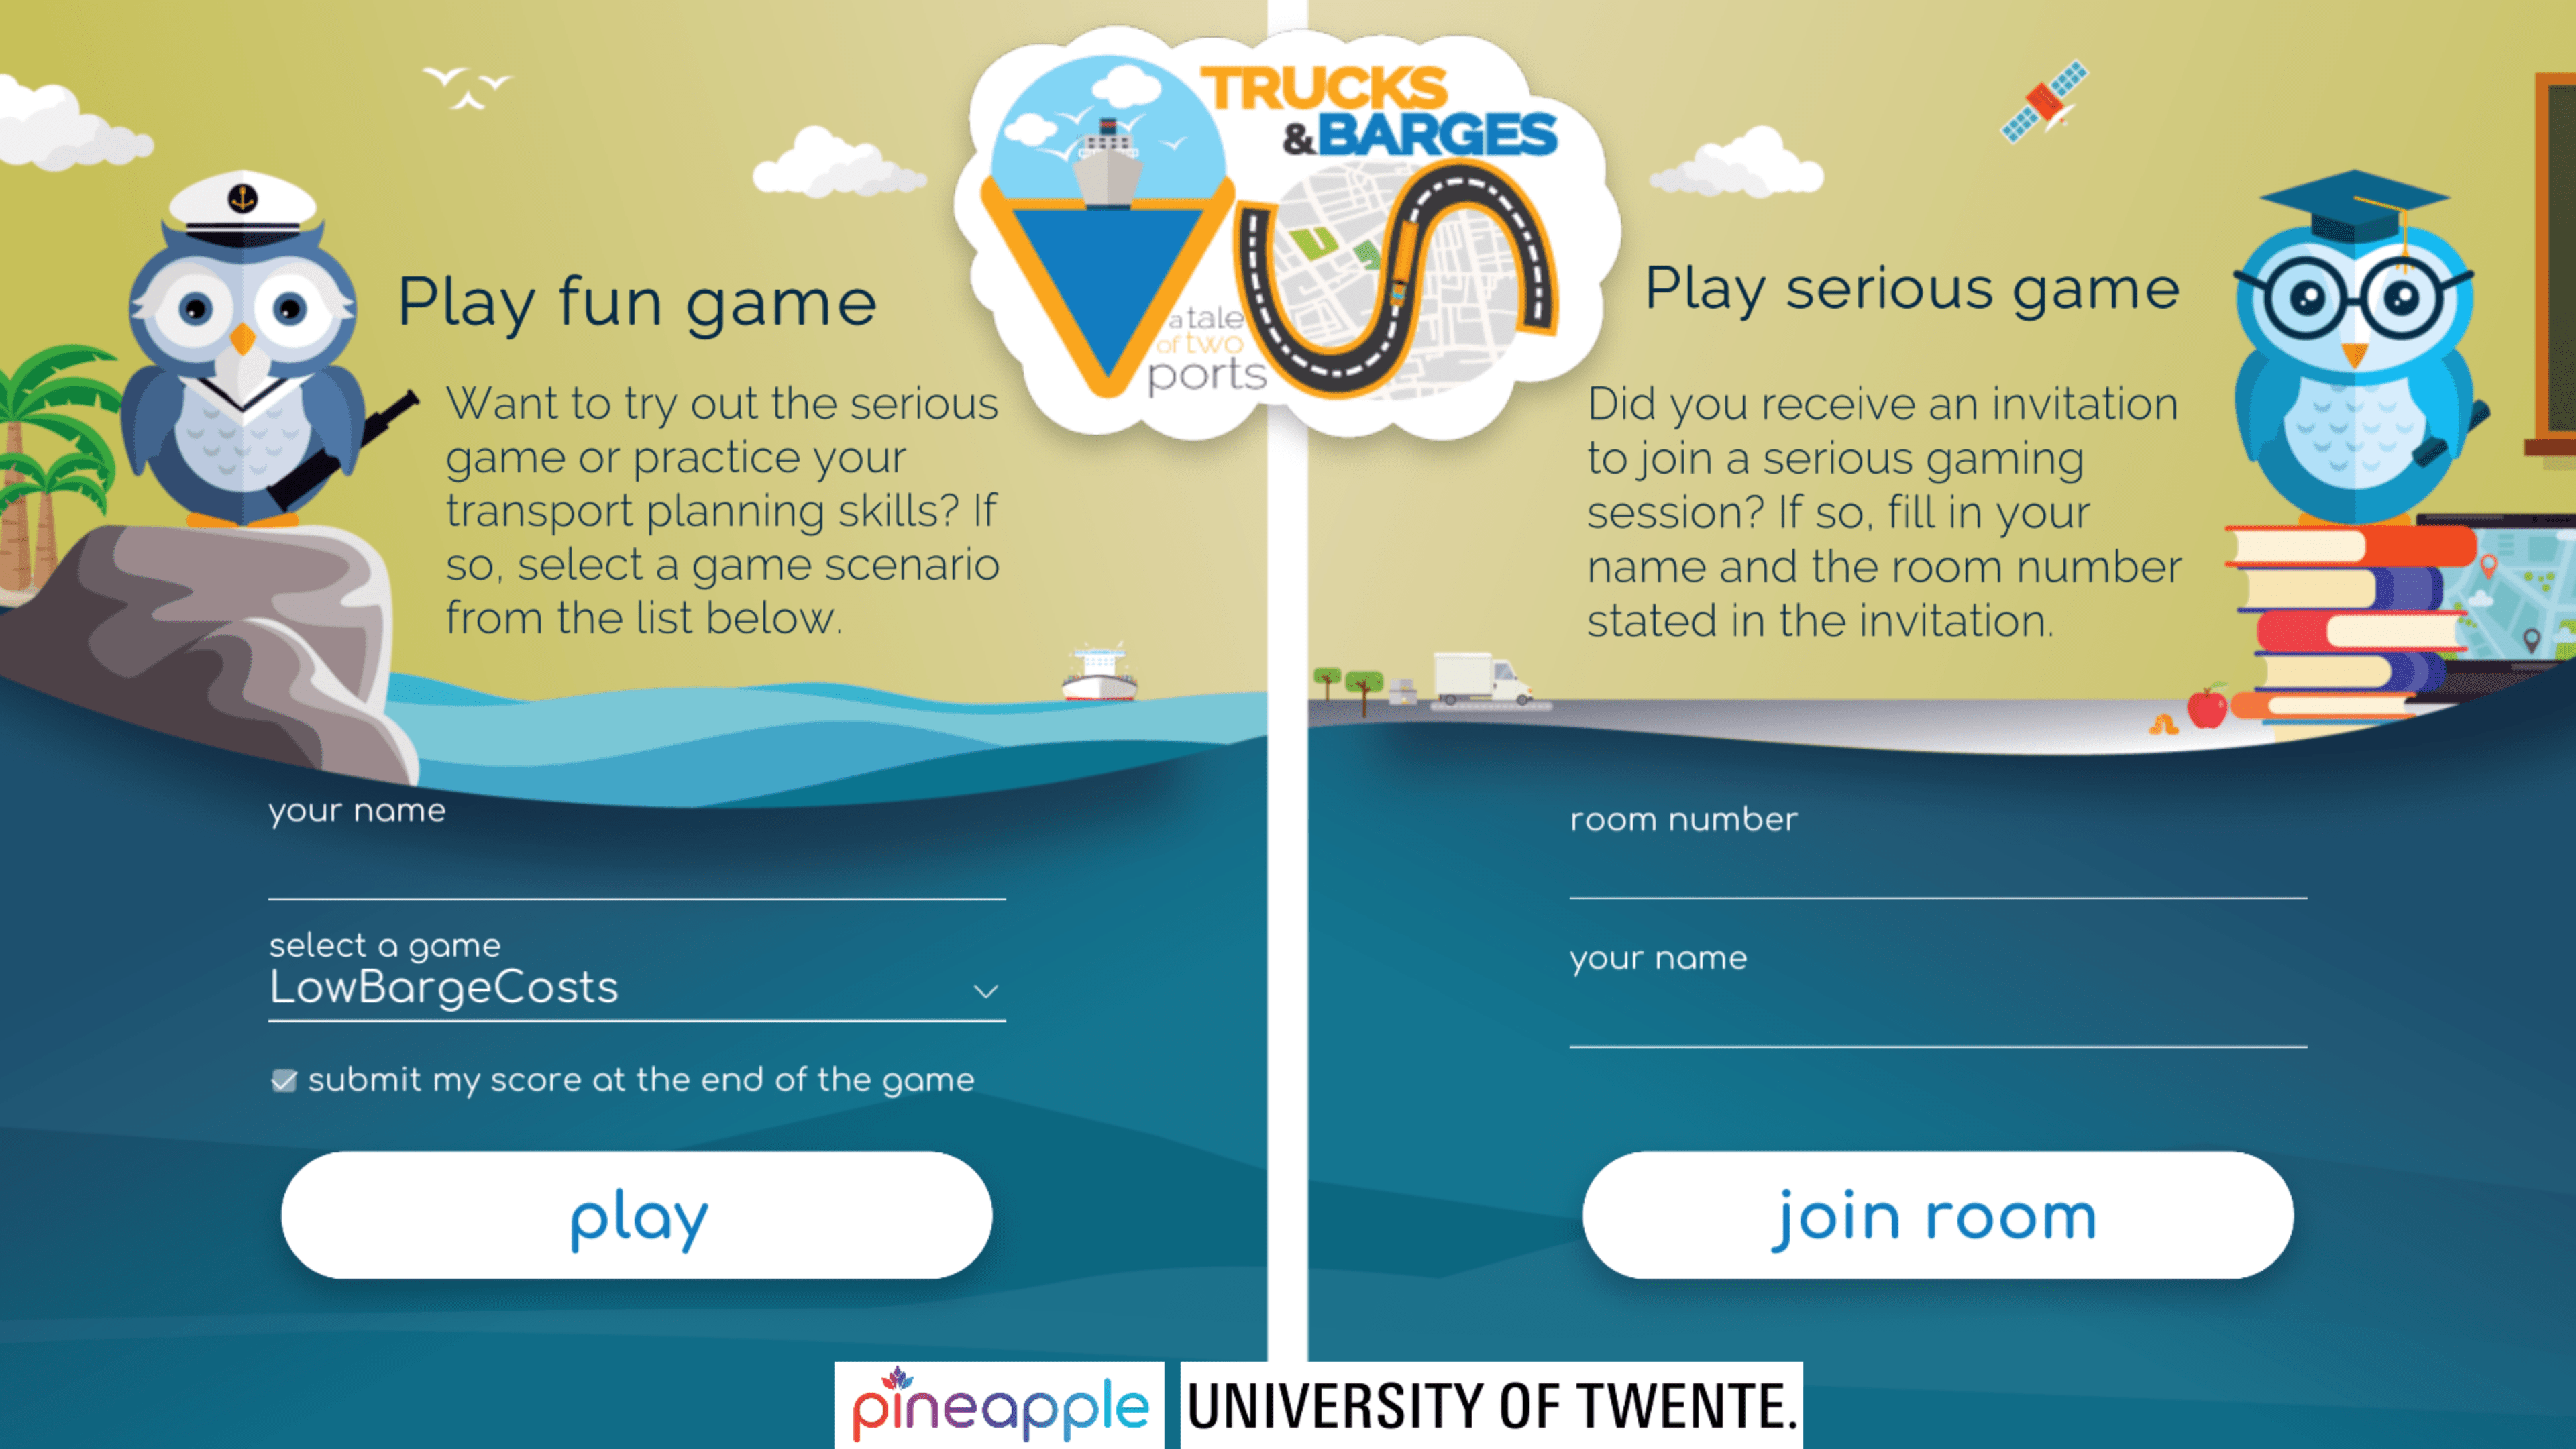 Trucks & Barges: Game Selection Screen